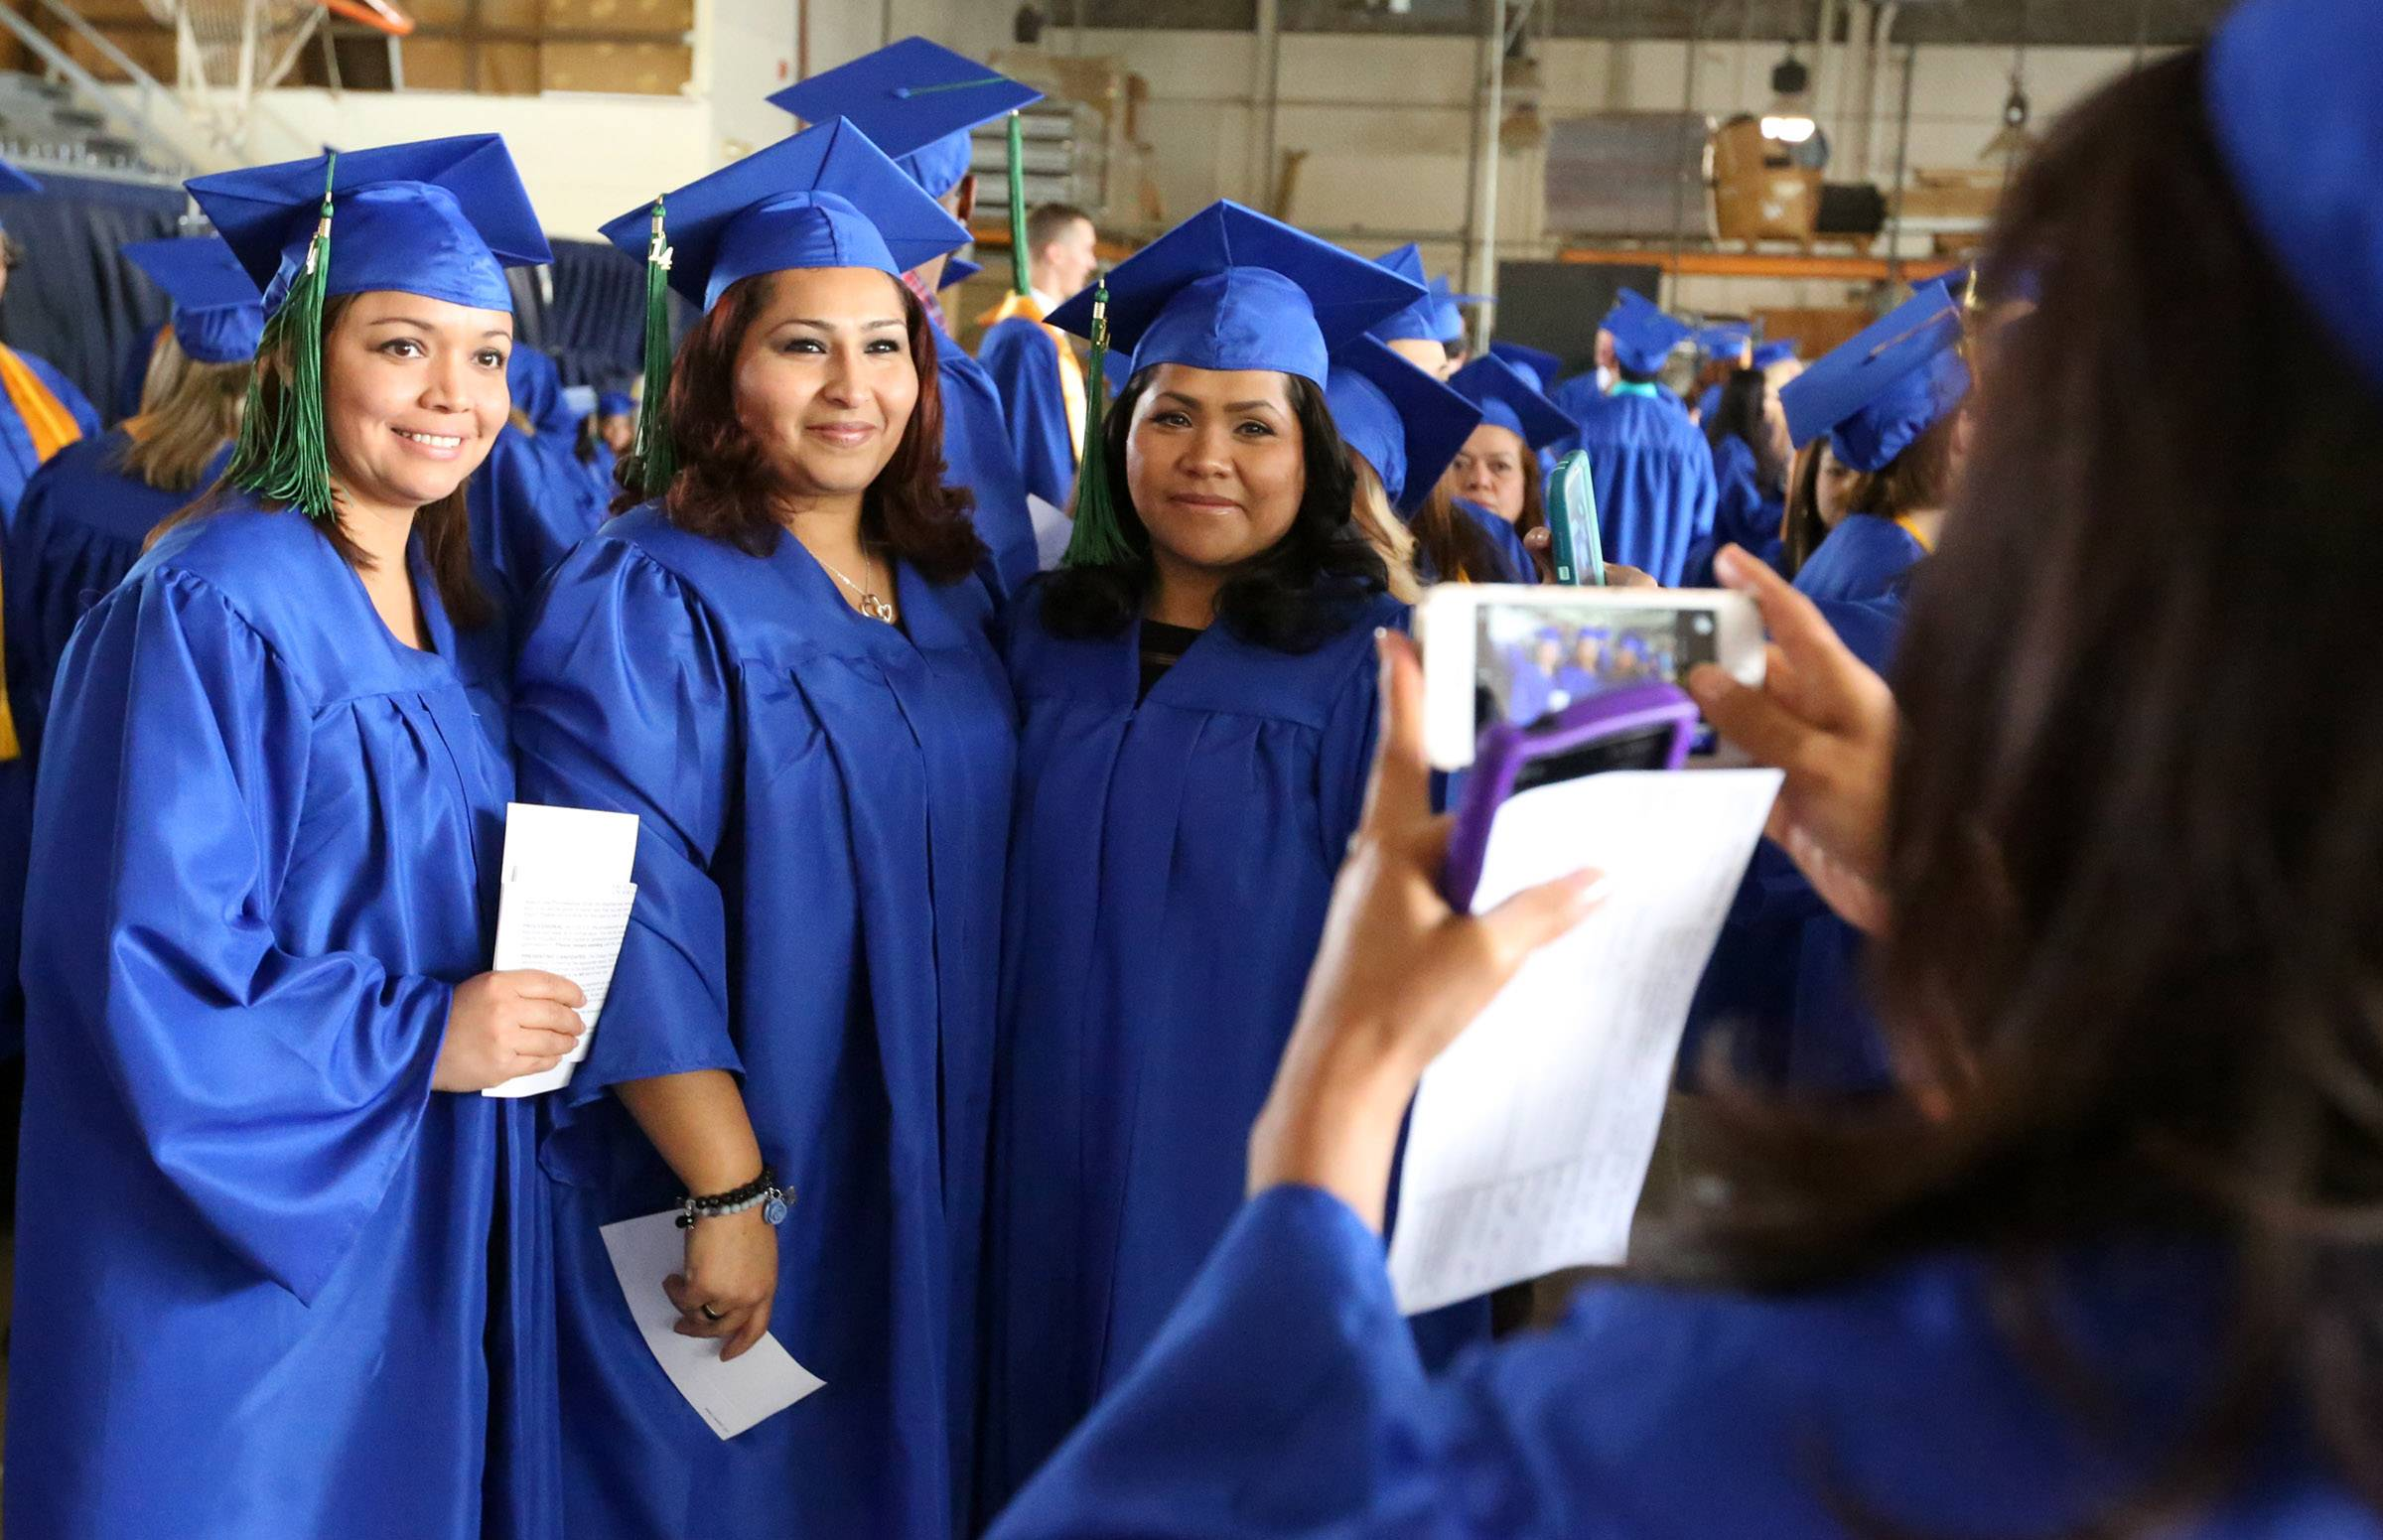 Aleyda Casas of Round Lake takes a photo of friends Maria Quinones of Grayslake, left to right, Araceli Torres of Round Lake, and Maria Sanchez of Zion before College of Lake County's 45th commencement ceremony on Saturday in Grayslake.